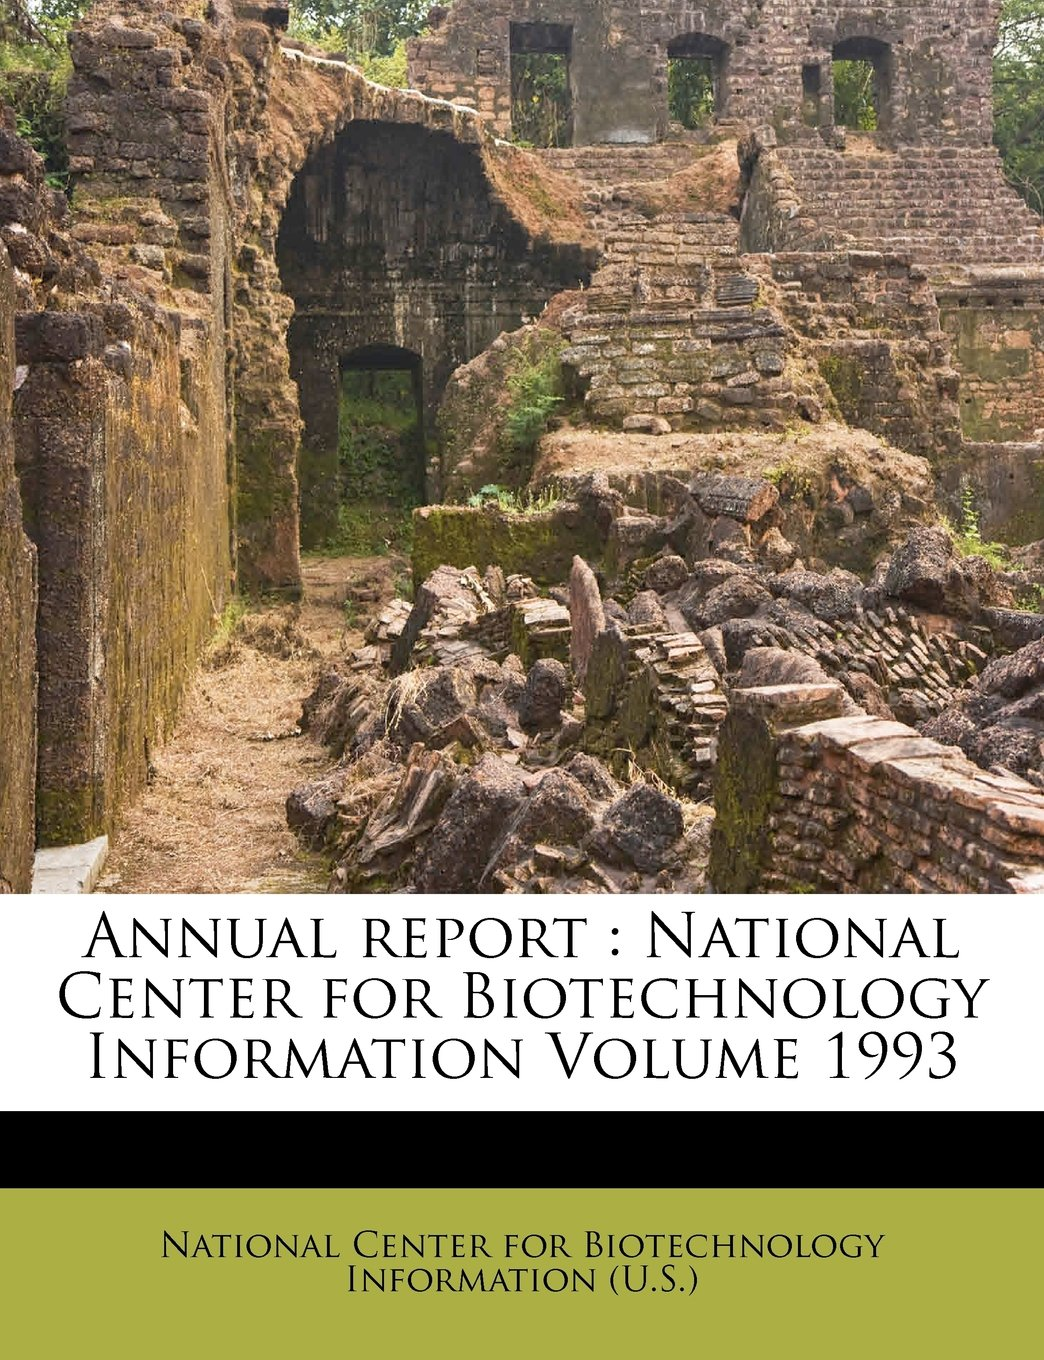 Annual report: National Center for Biotechnology Information Volume 1993 pdf